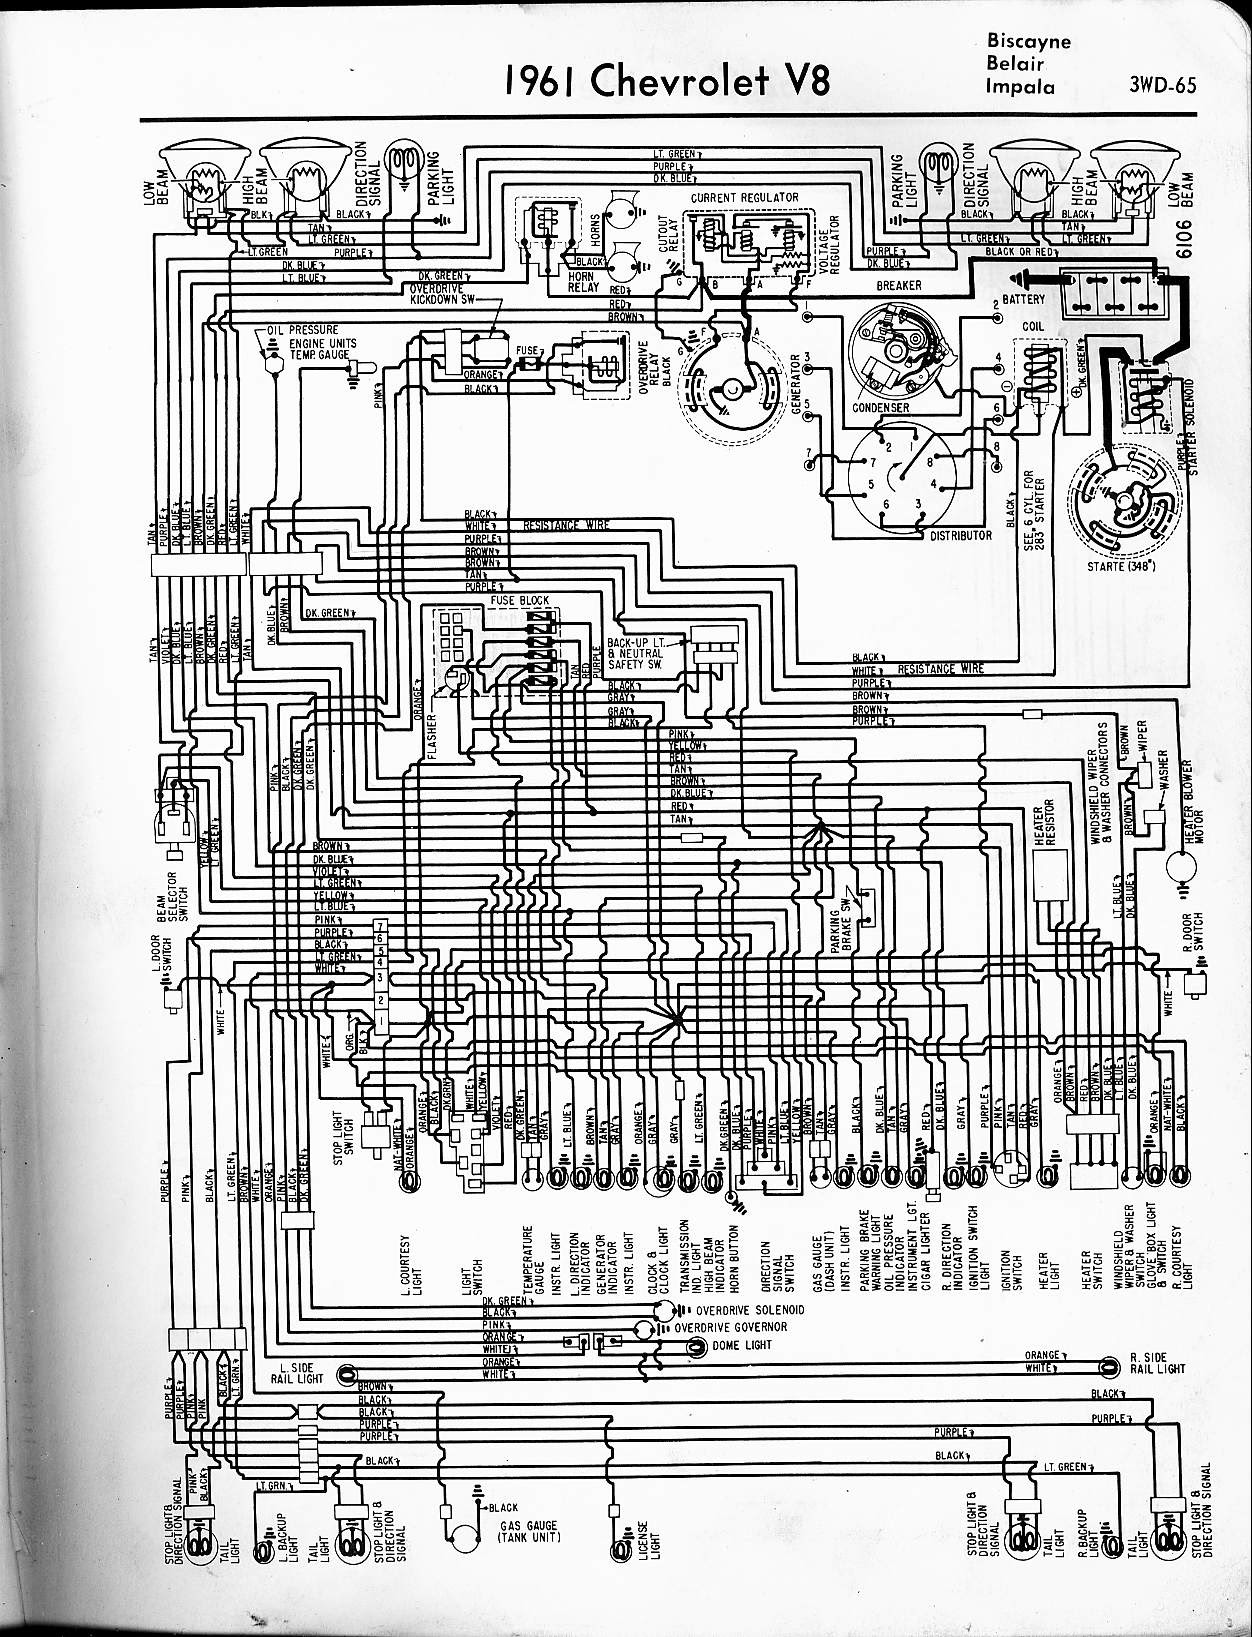 1957 Chevy Bel Air Wiring Harness Diagram Wiring Diagram Theory Theory Zaafran It